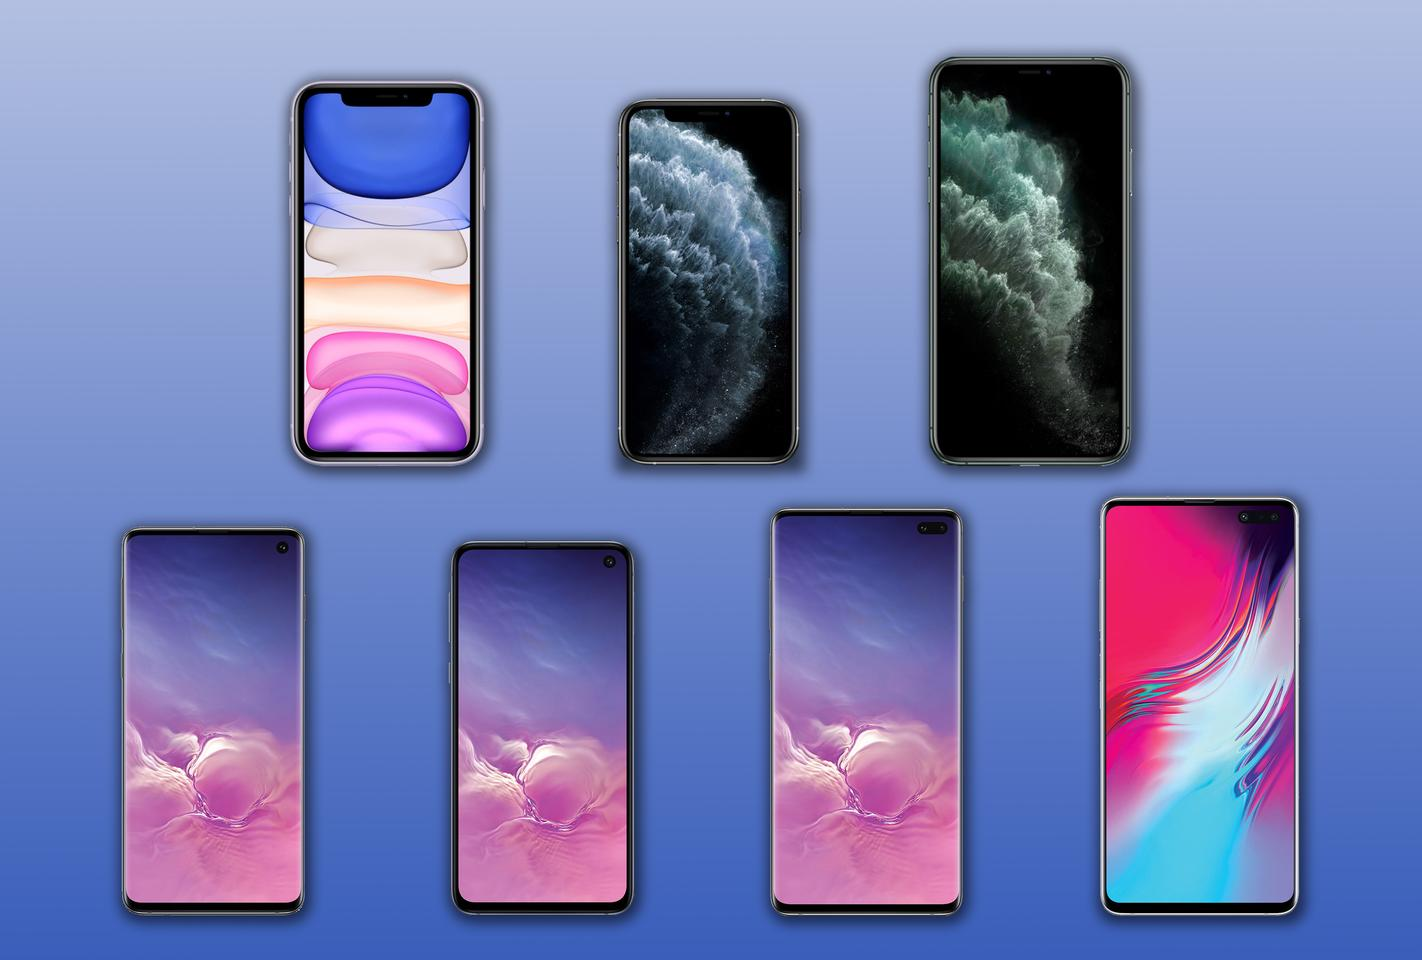 New Atlas compares the specs and features of the iPhone 11, 11 Pro and 11 Pro Max to the Samsung Galaxy S10e, S10, S10+ and S10 5G.